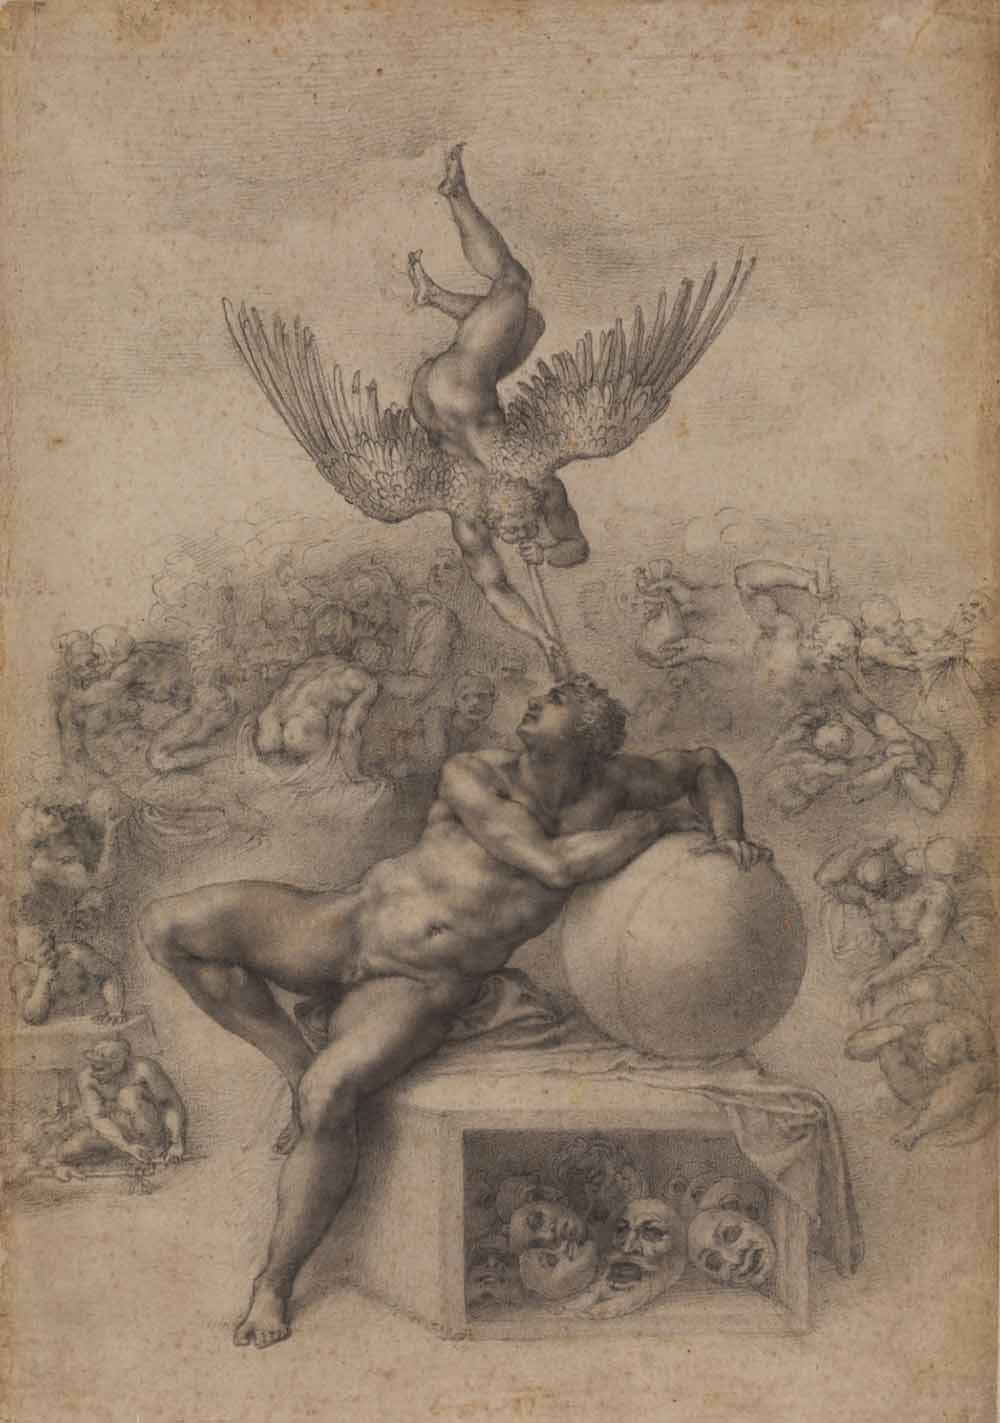 A sketch of a man guarding a sphere, with a winged beast hovering above.